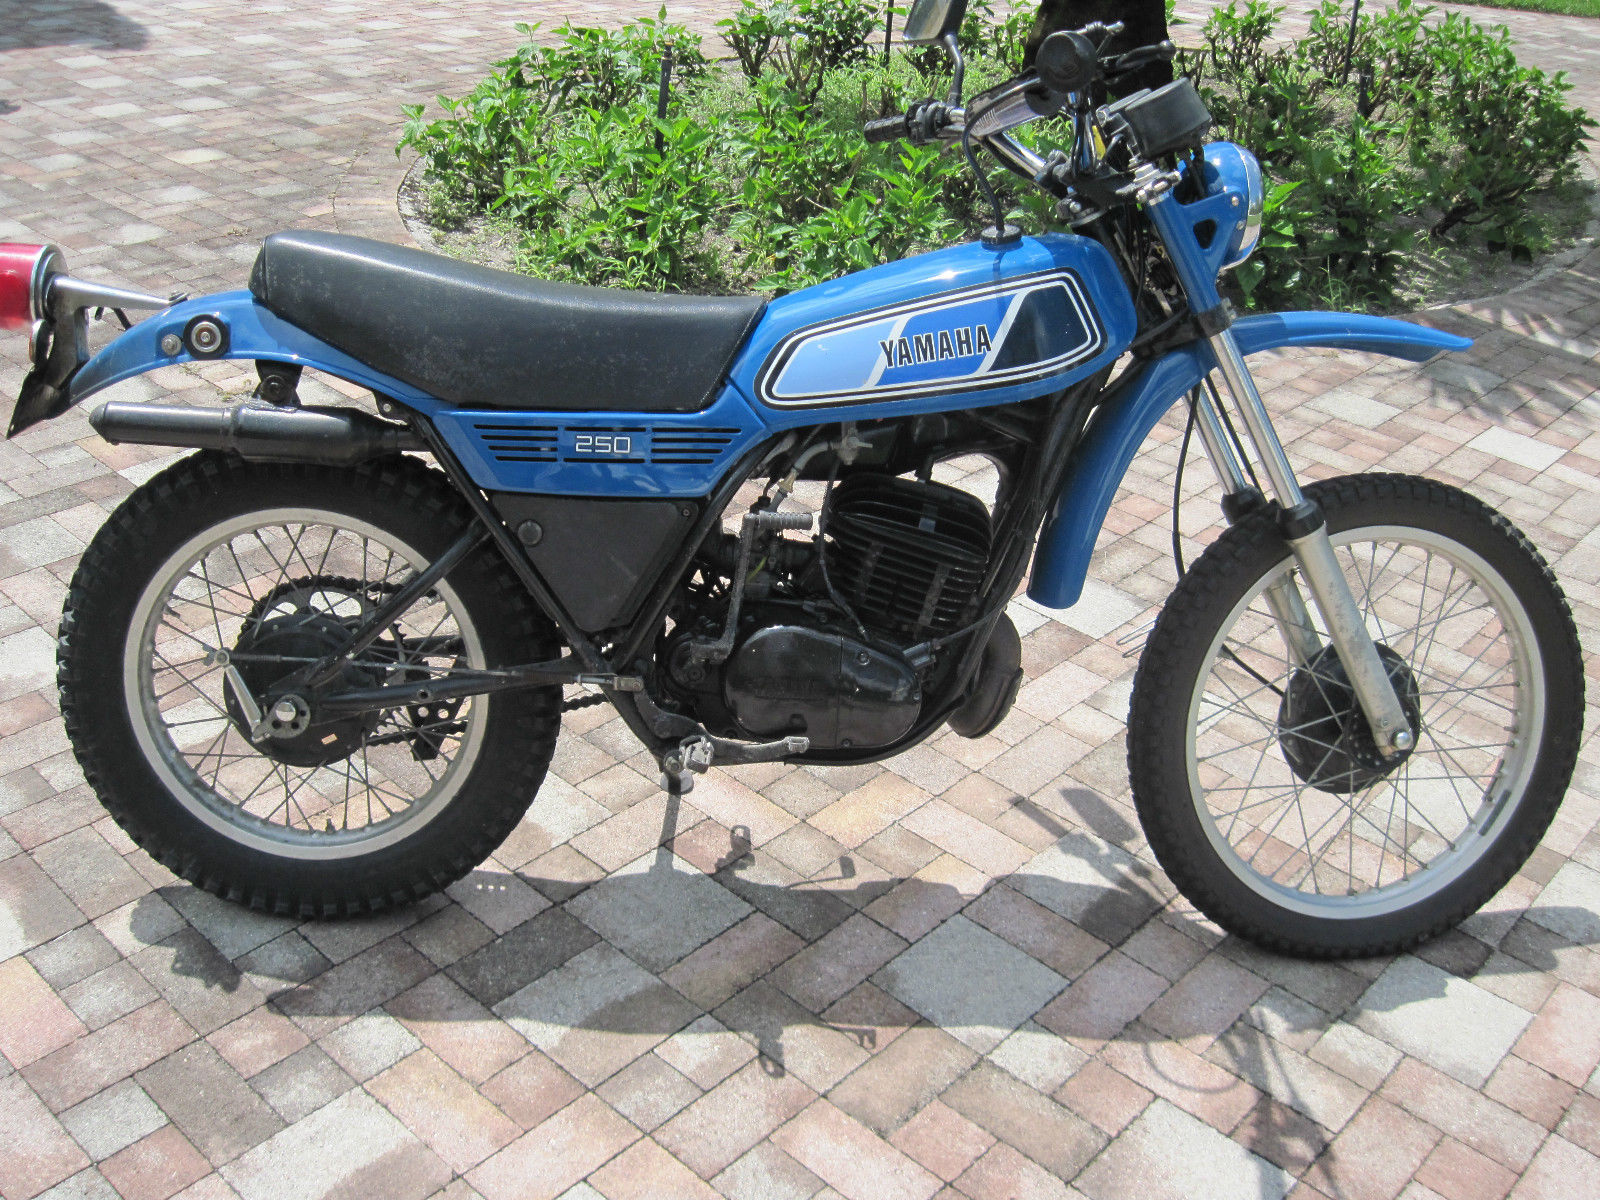 hight resolution of 1975 yamaha dt 175 wiring diagram yamaha rs 200 wiring diagram wiring diagram elsalvadorla 1979 yamaha